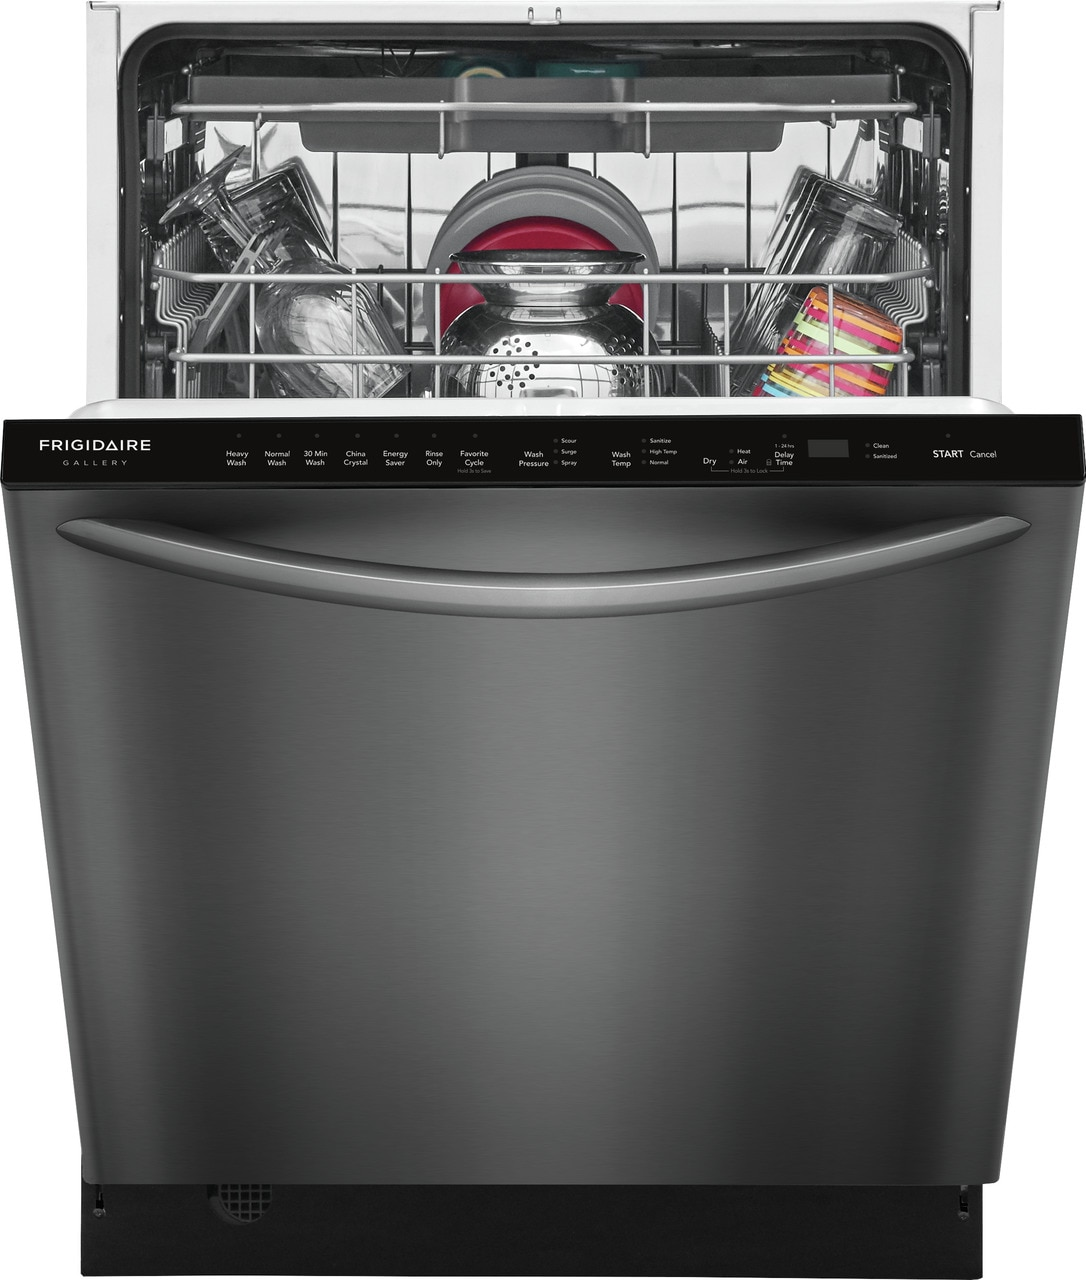 """Model: FGID2479SD   Frigidaire Gallery 24"""" Built-In Dishwasher with EvenDry™ System"""